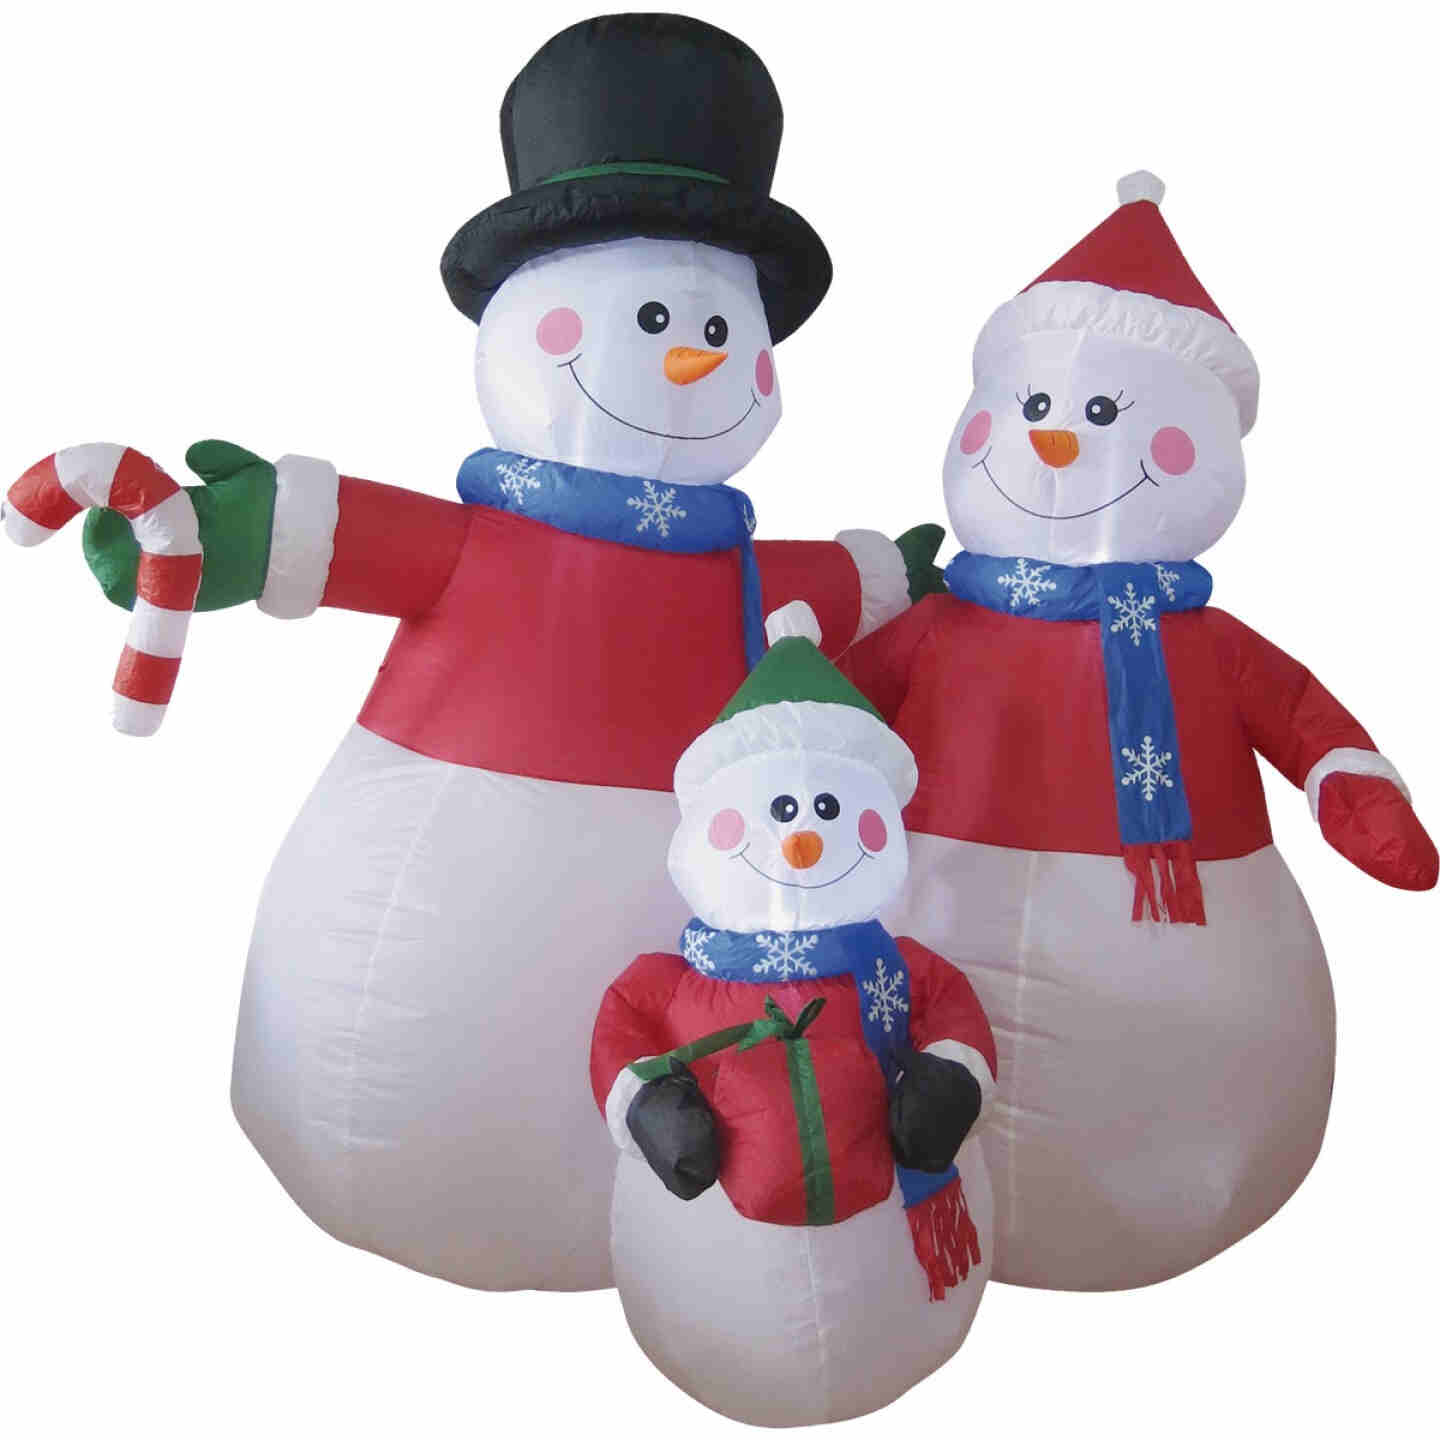 Brite Star 6 Ft. Snowman Family Airblown Inflatable Image 1